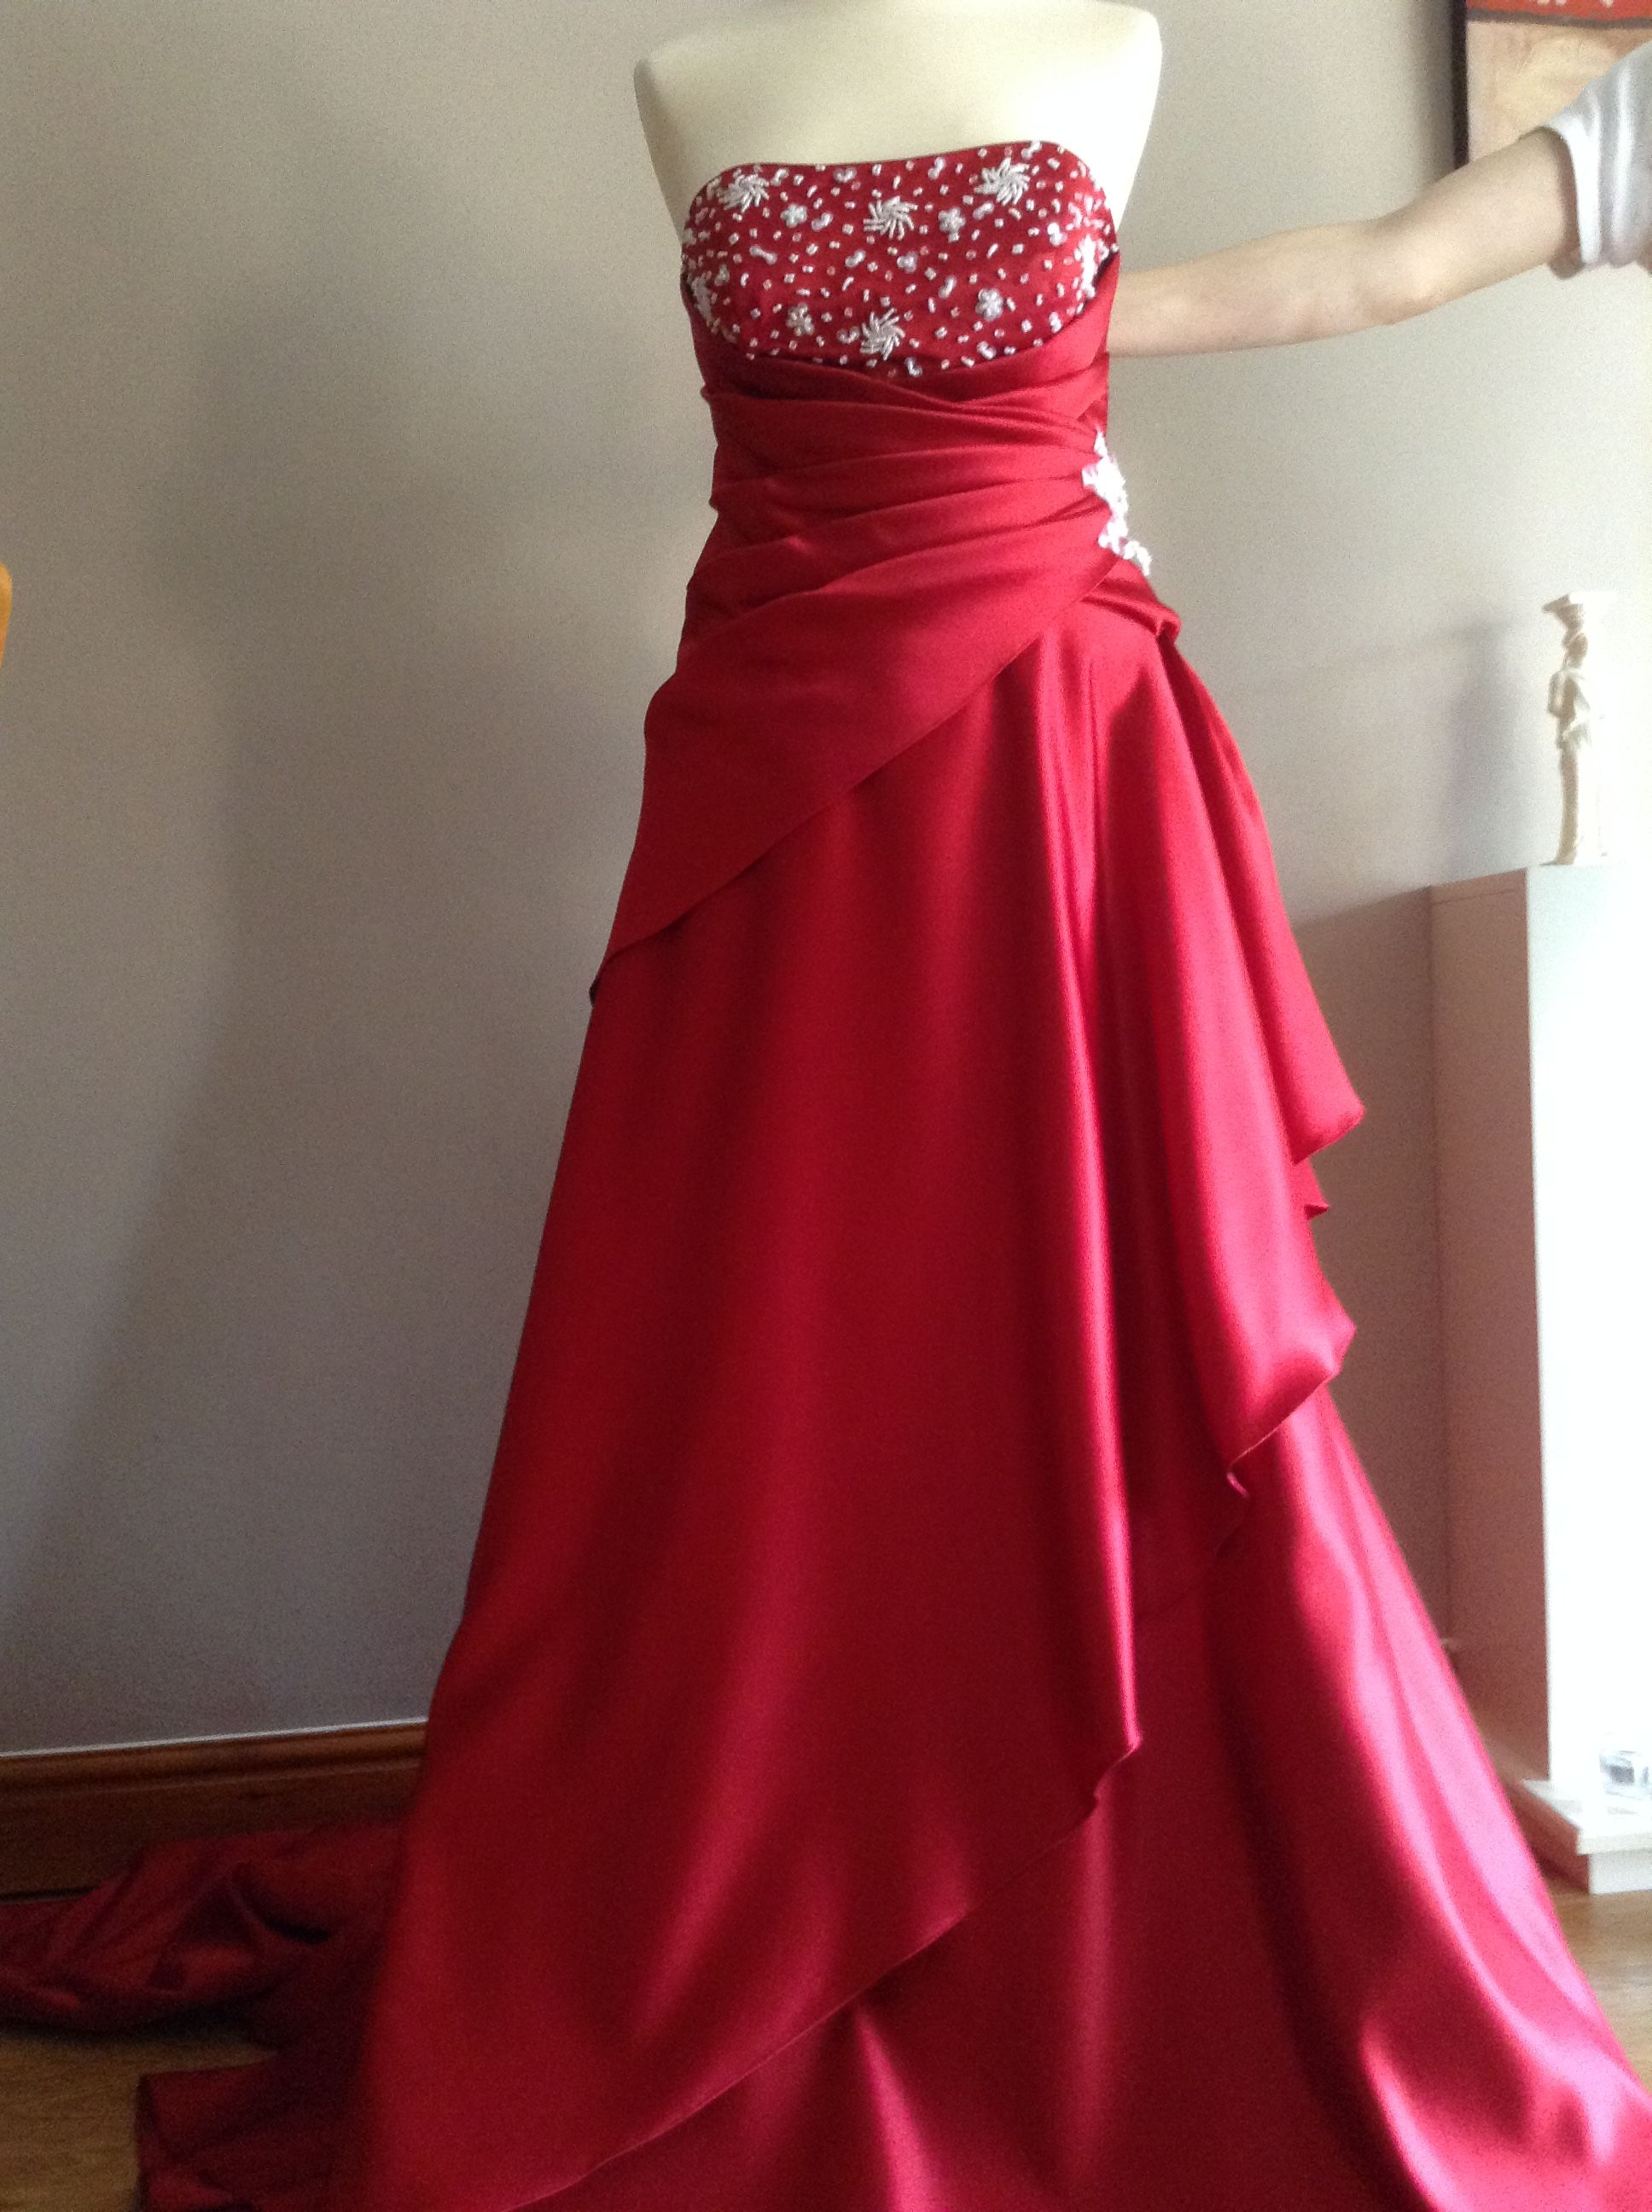 size 14/16 for sale £90.